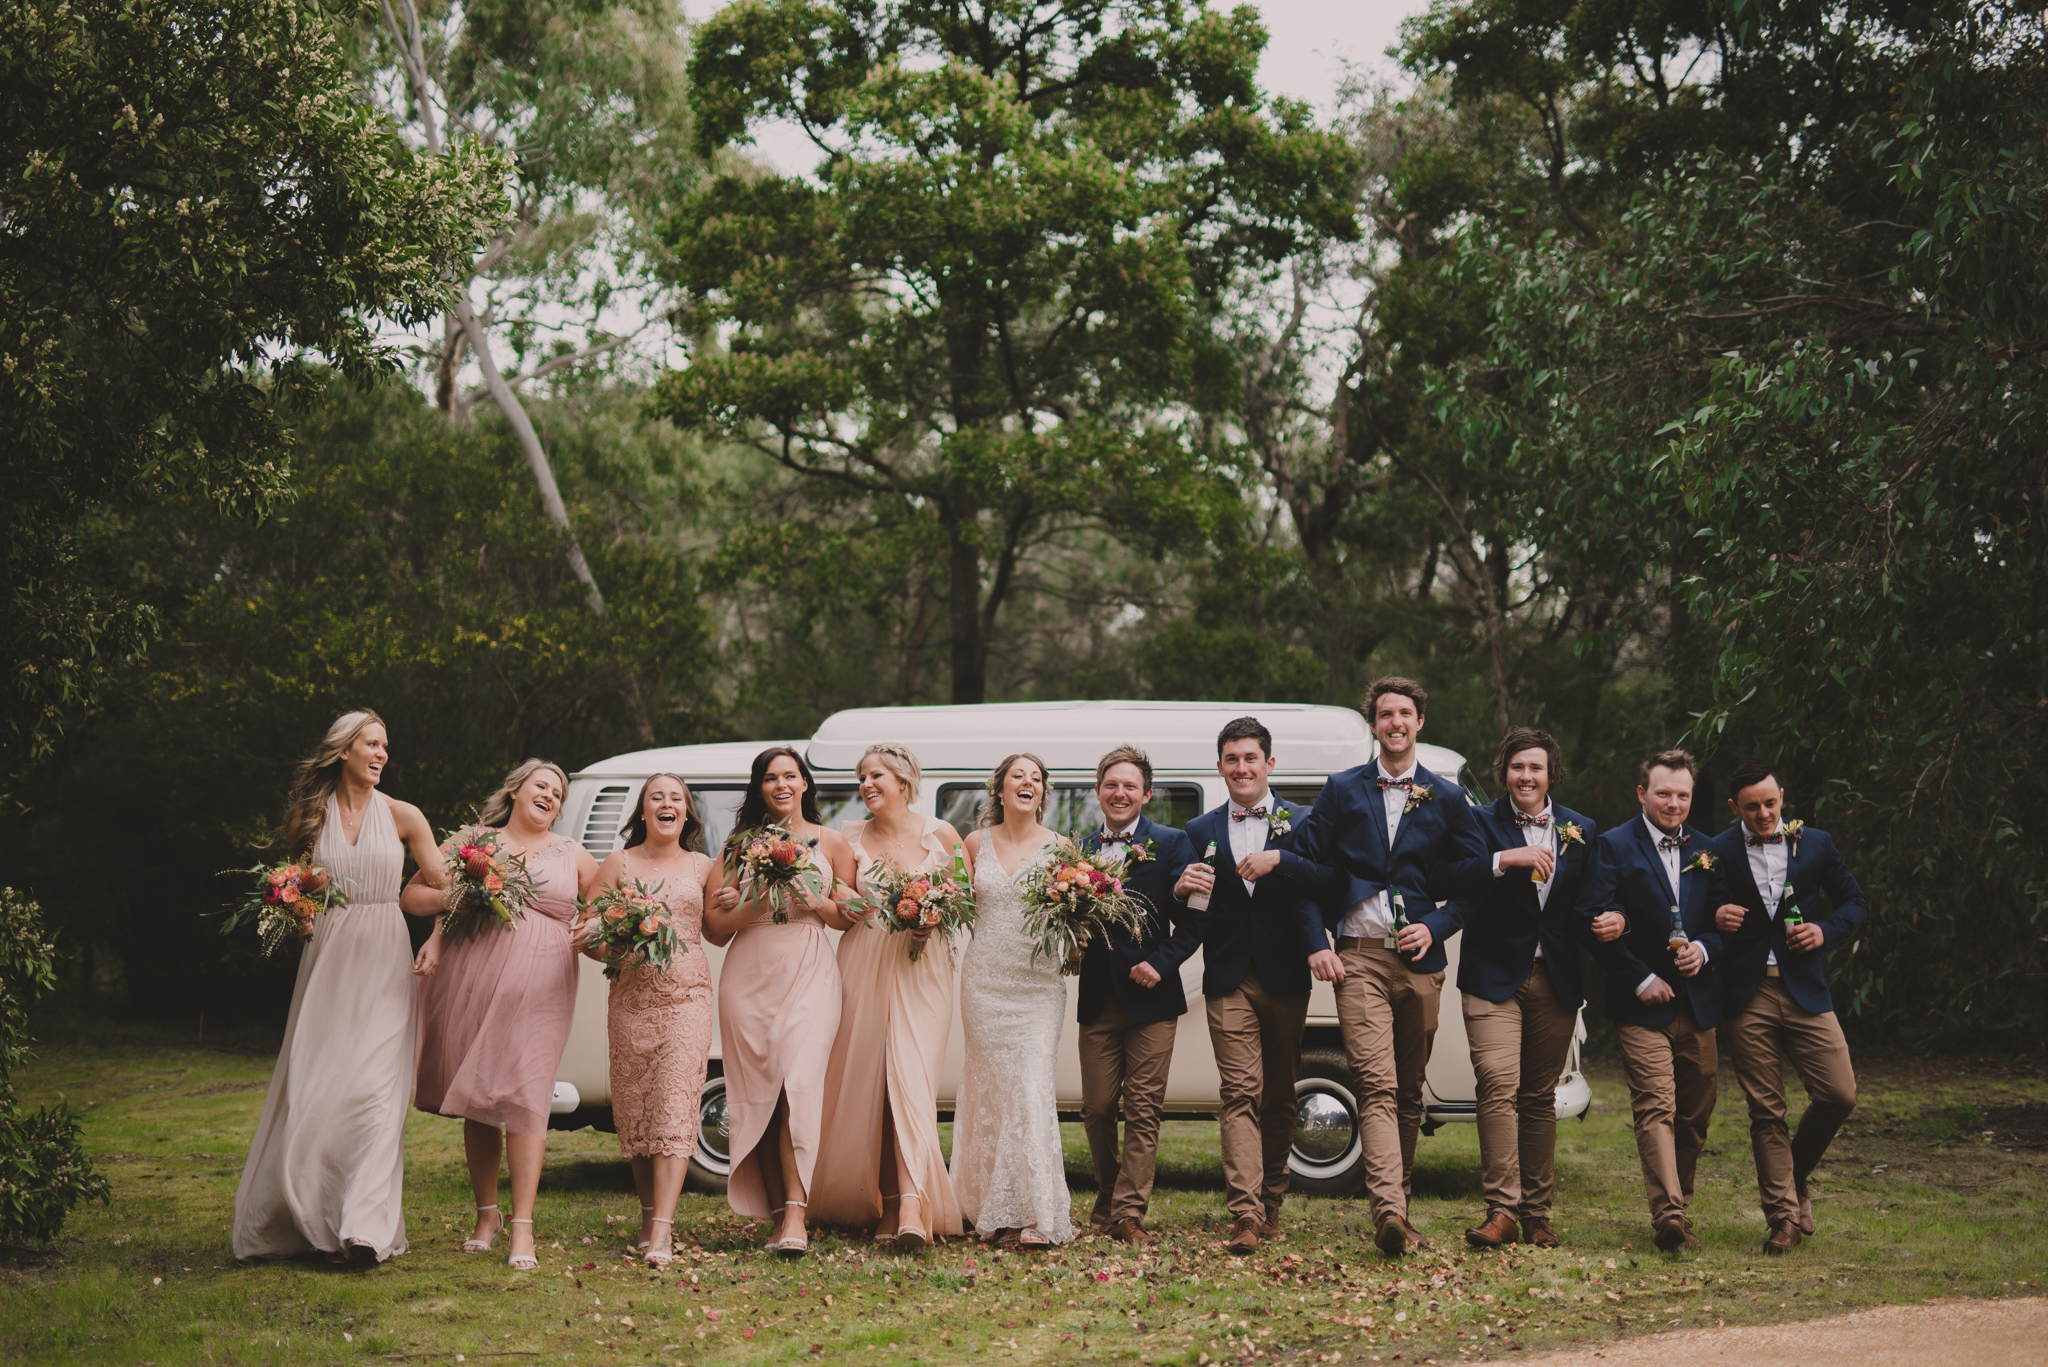 …Thank you! We had an amazing wedding and all the guests raved about how good the Tipi looked.    Thank you for helping to make our day amazing!    Jacqui and Nathan